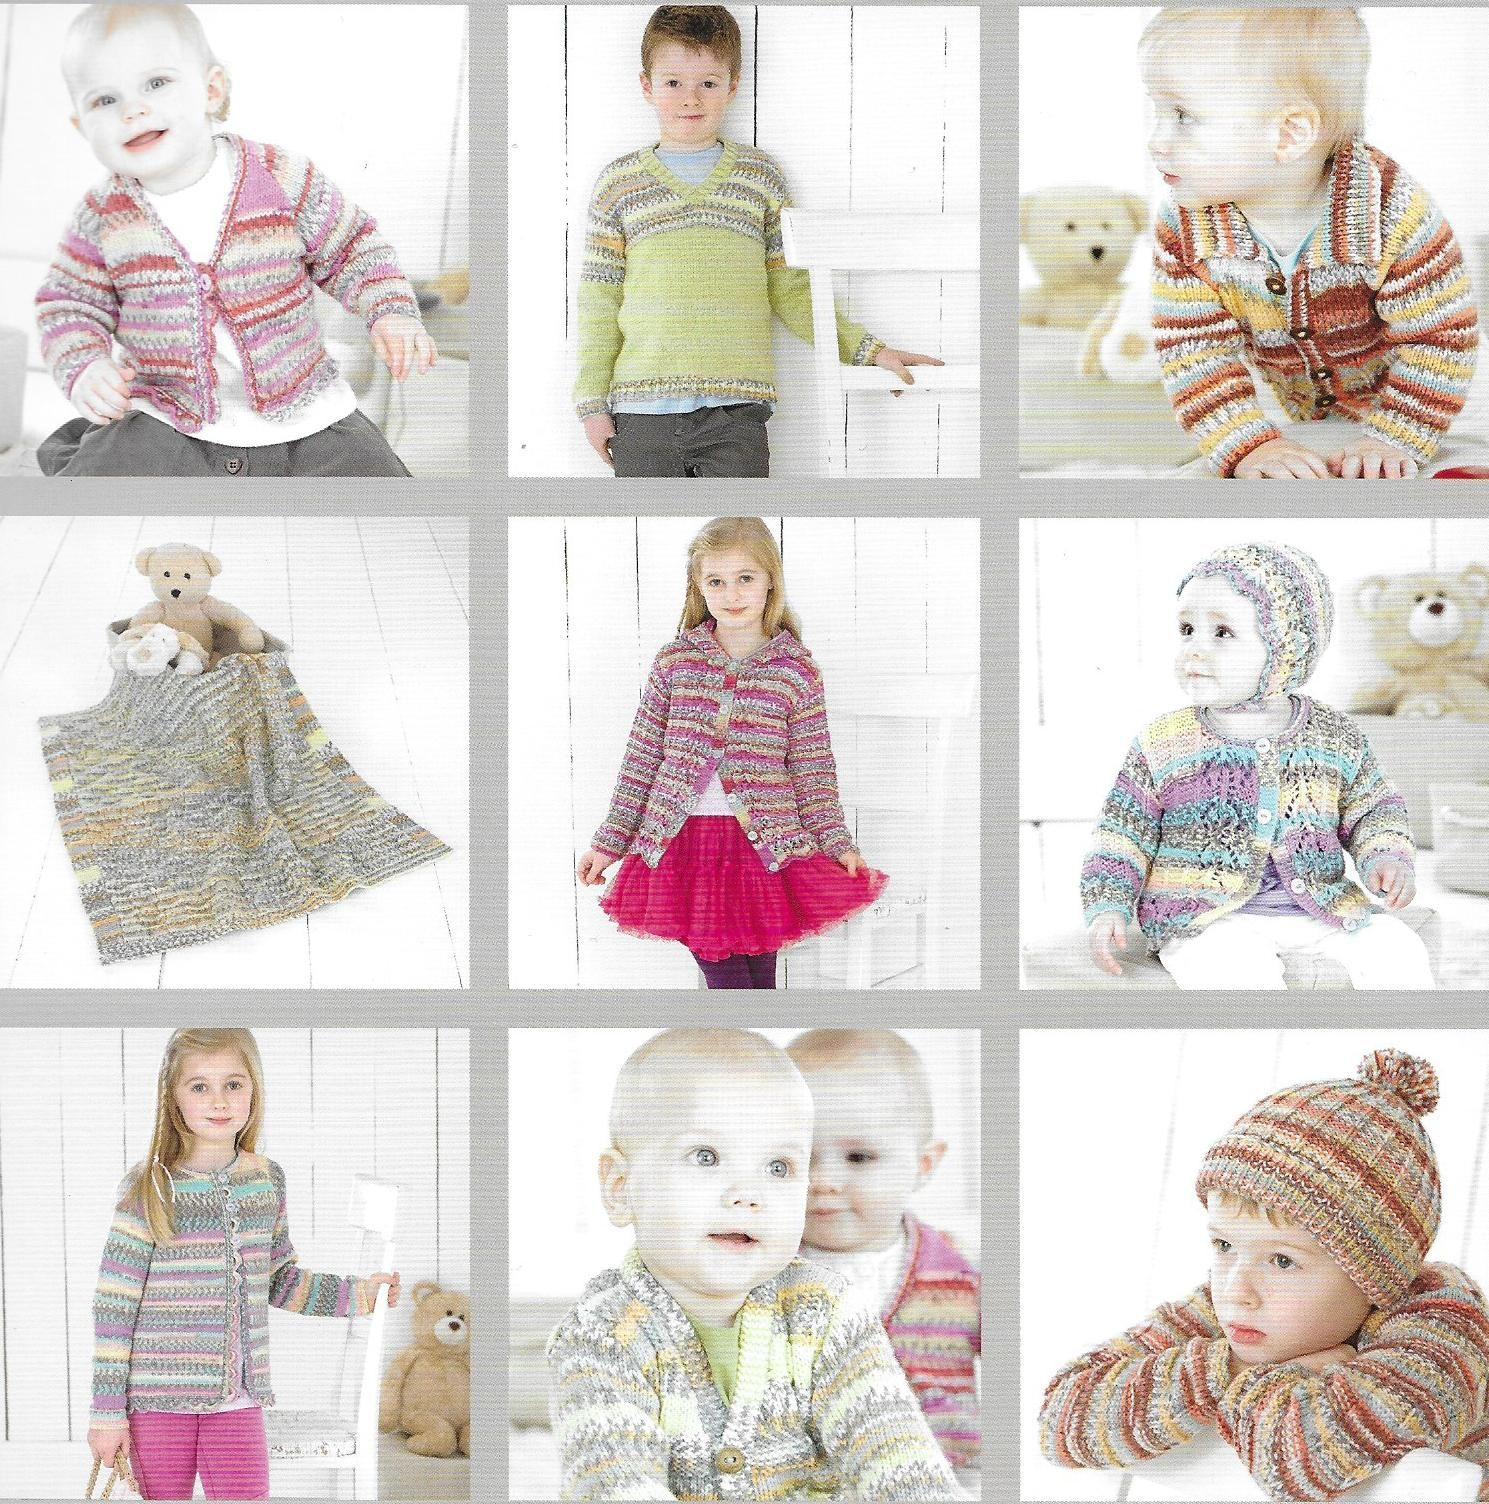 b54a664d1f94 Sirdar Book 469 Baby Crofter 8. 15 hand knit designs for babies ...